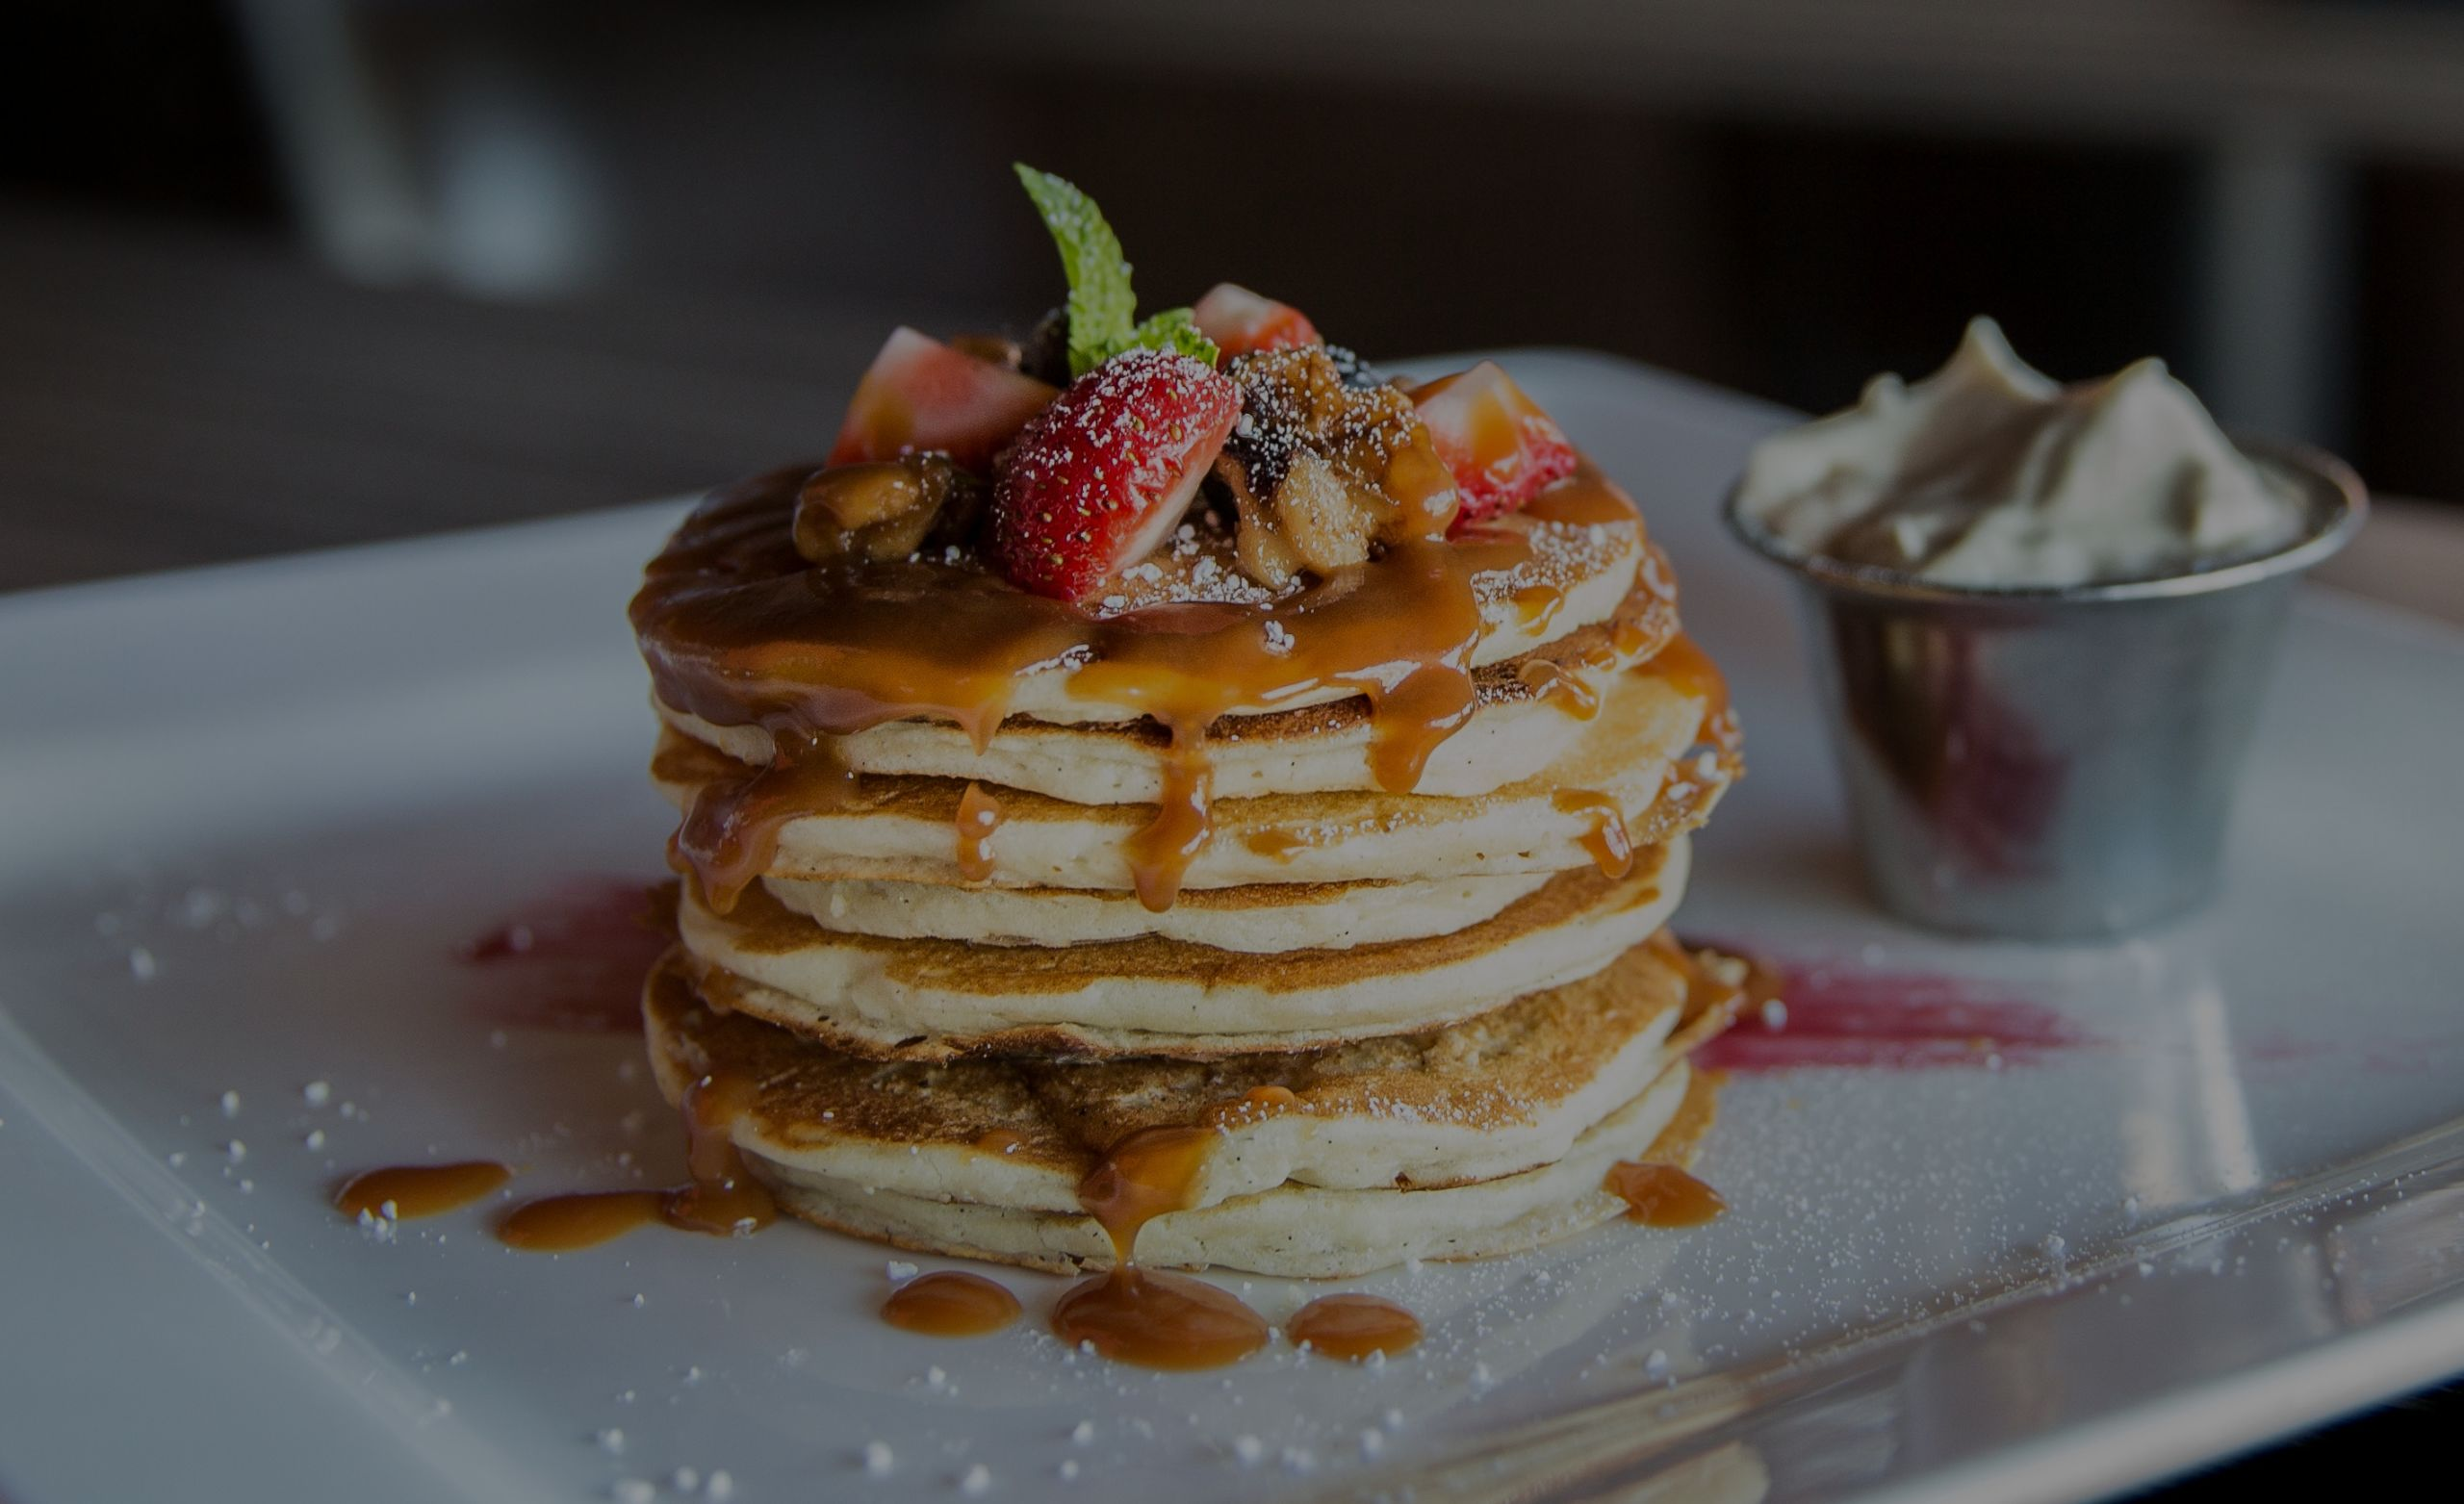 Best Breakfast Spots in Ashburn, VA